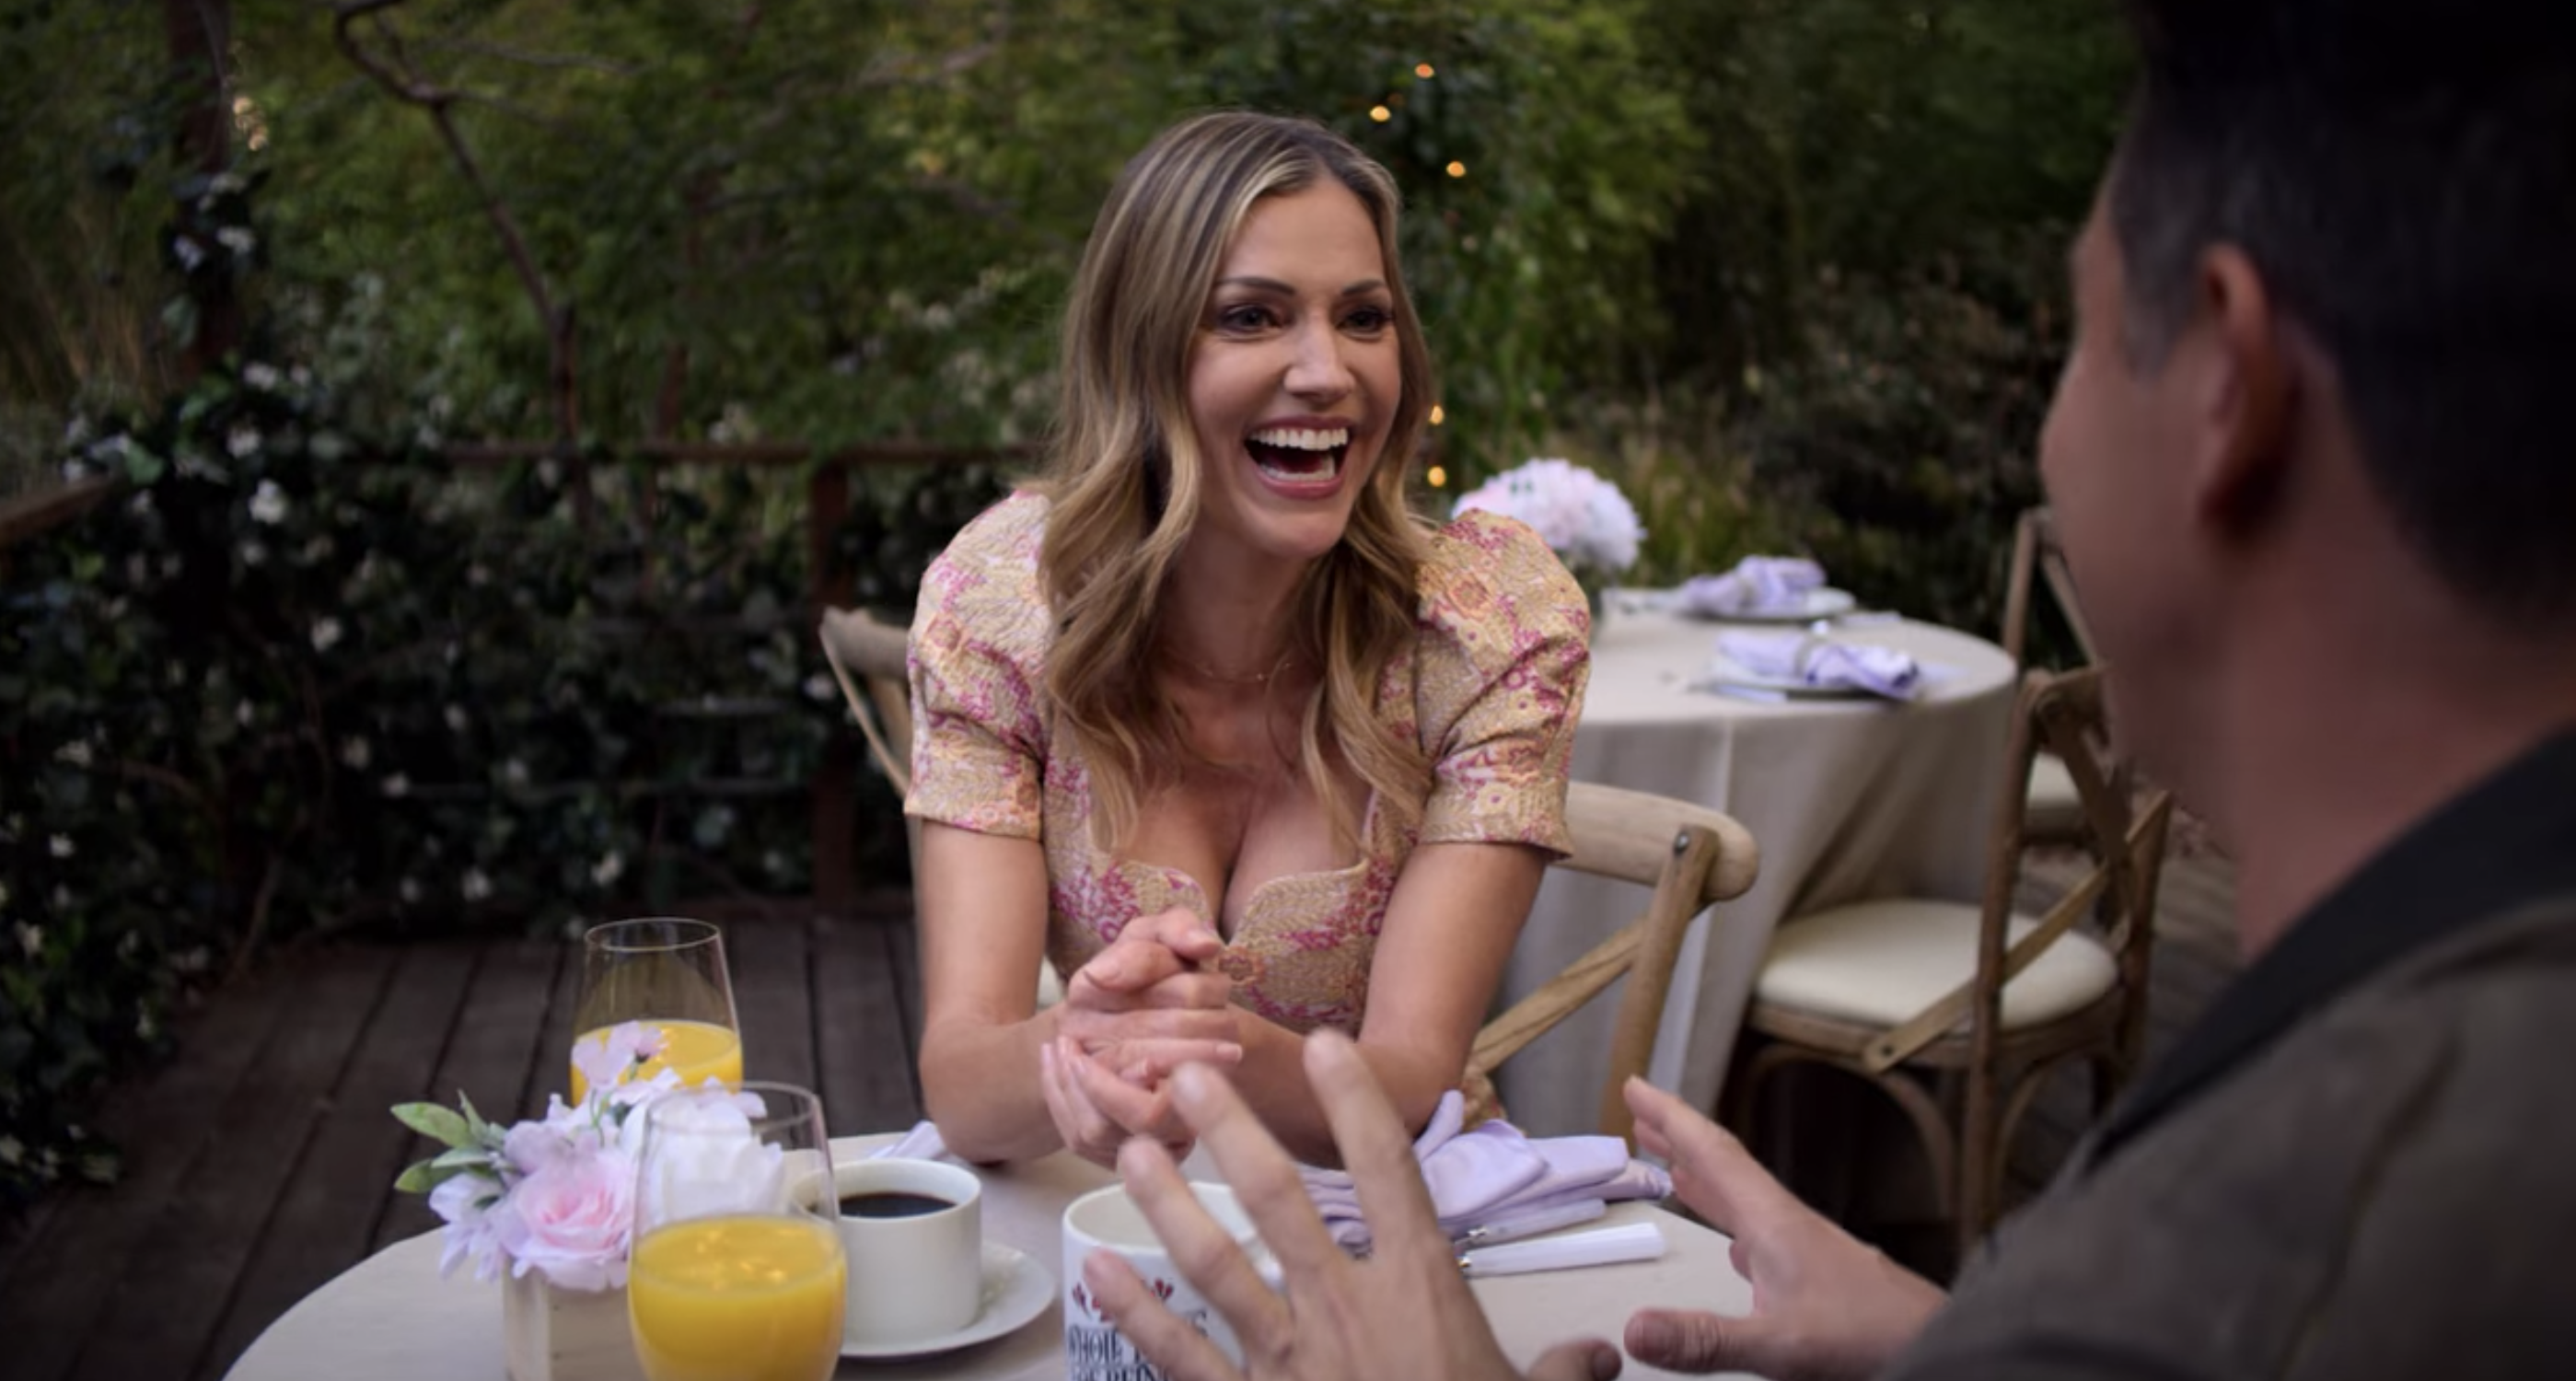 Tricia and Kevin at a restaurant with coffee and orange juice during a scene